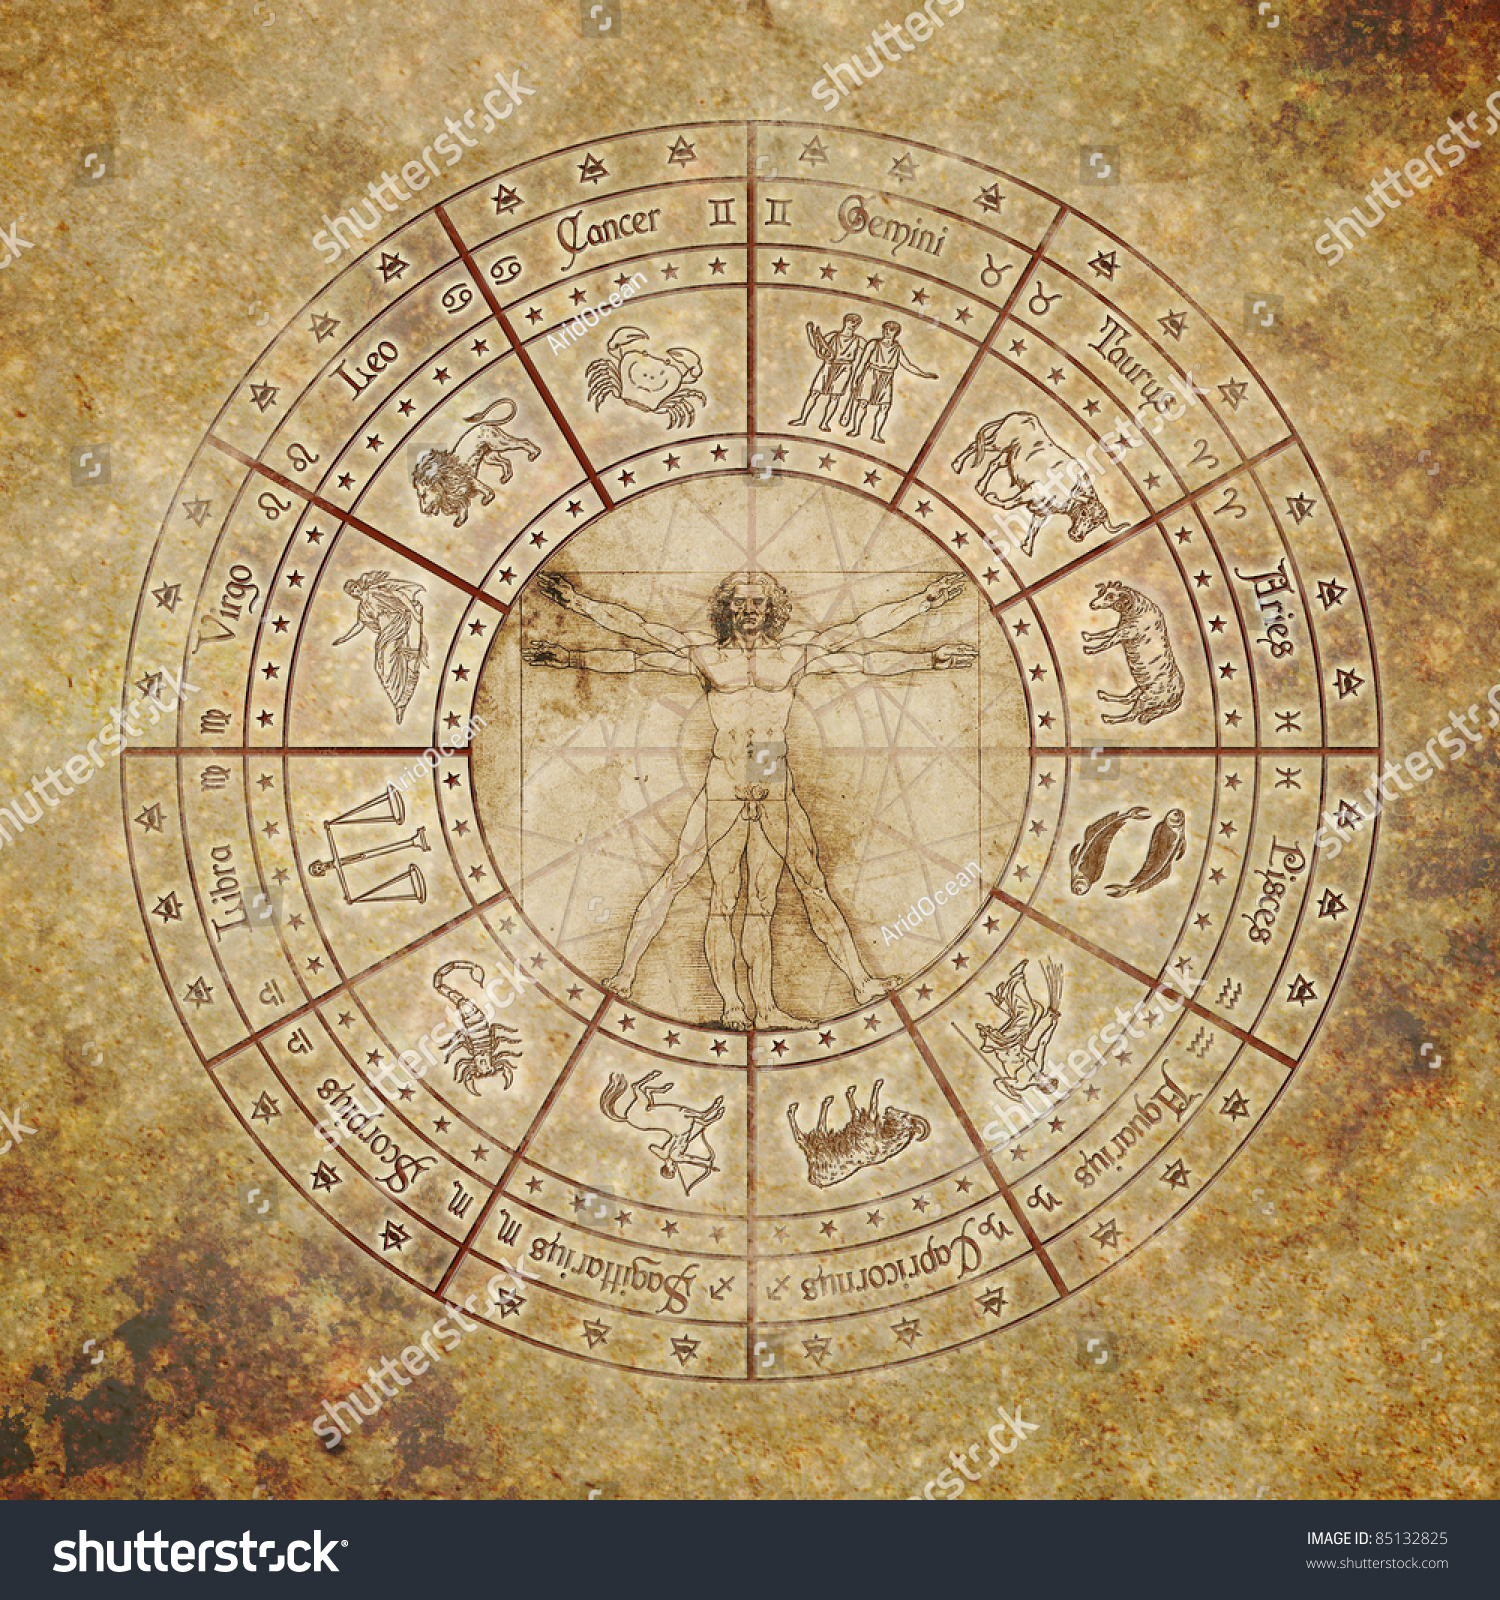 Zodiac Circle With Vitruvian Man In The Center On Grunge Background ...